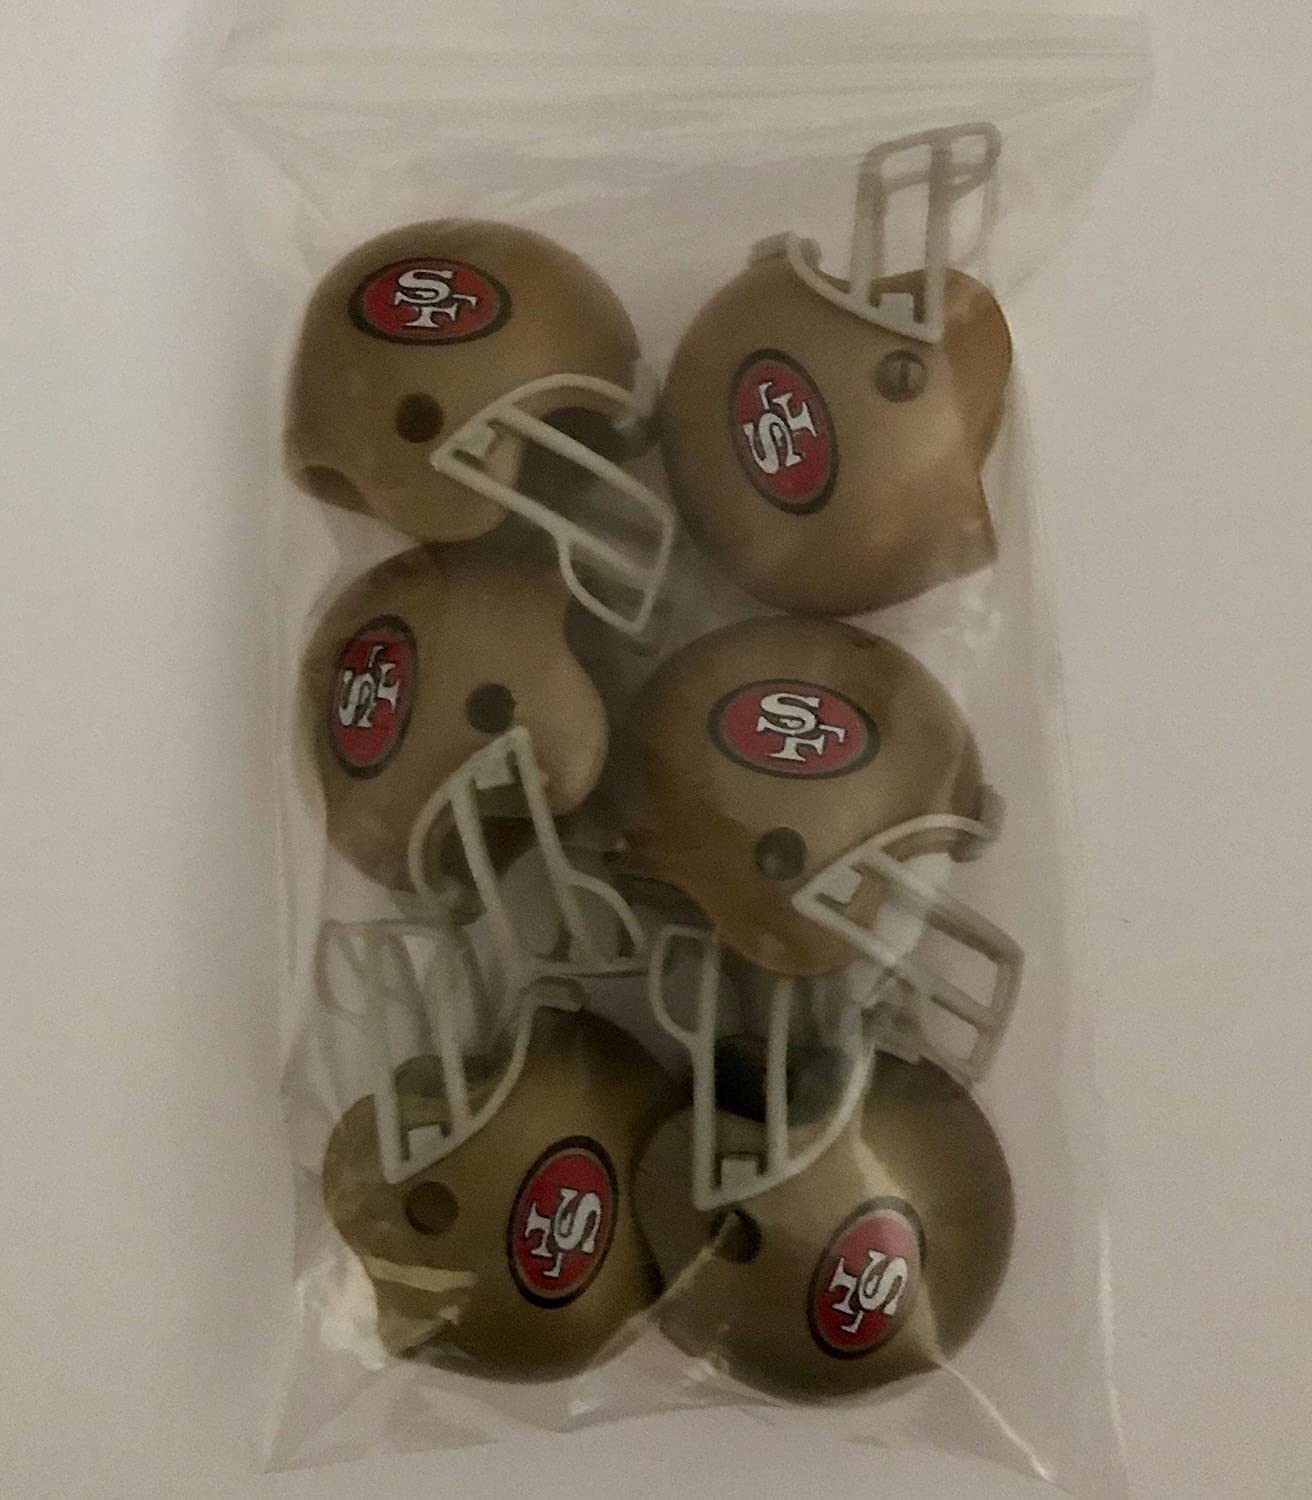 Collectible Gumball Vending Toy New in Bag Pencil Cap. NFL 6 Pack Los Angeles Chargers 2017 Helmet Mini Football 2 Inch Helmets Complete Team Logo Cake Toppers Party Favors